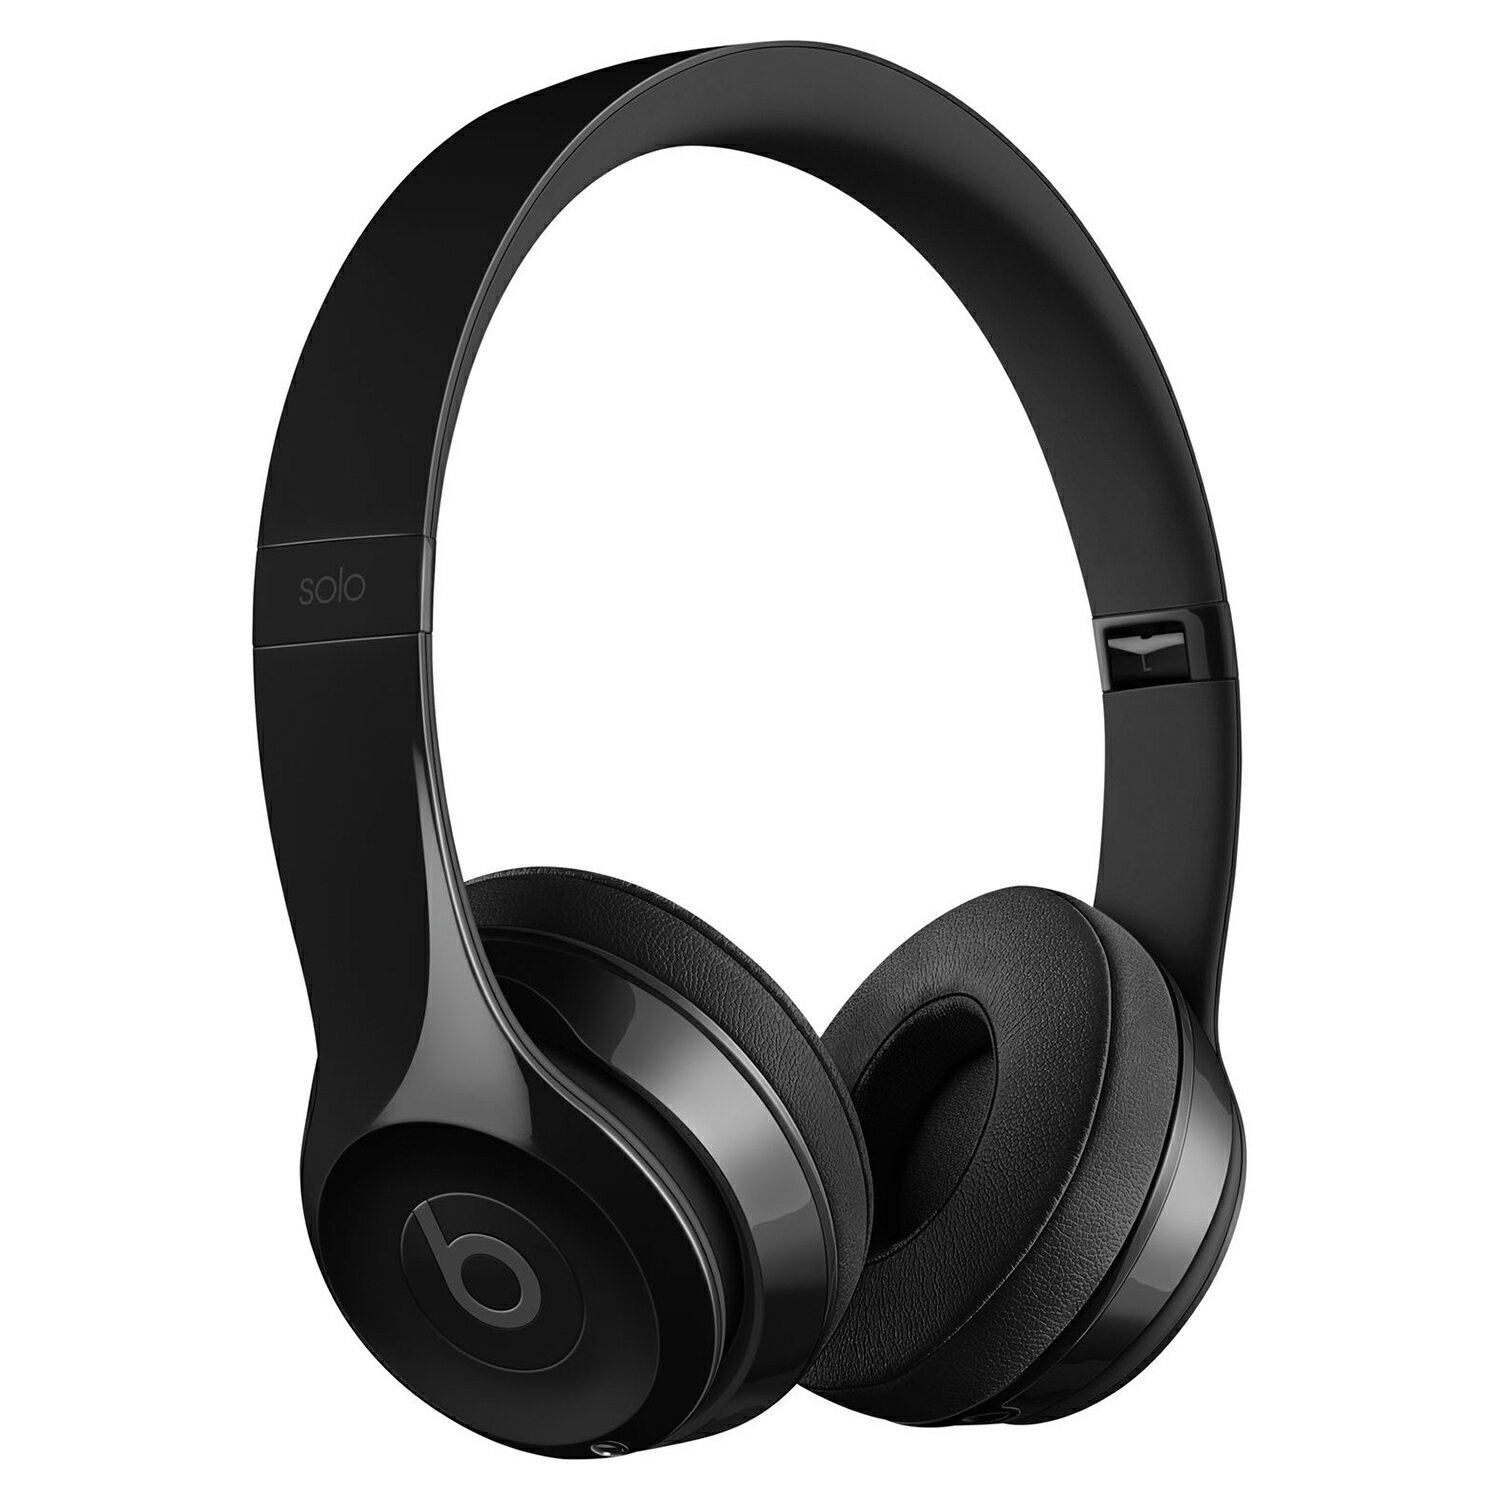 Beats by Dr Dre Solo 3 Wireless Bluetooth On-Ear Stereo Headphones Glossy Black 0